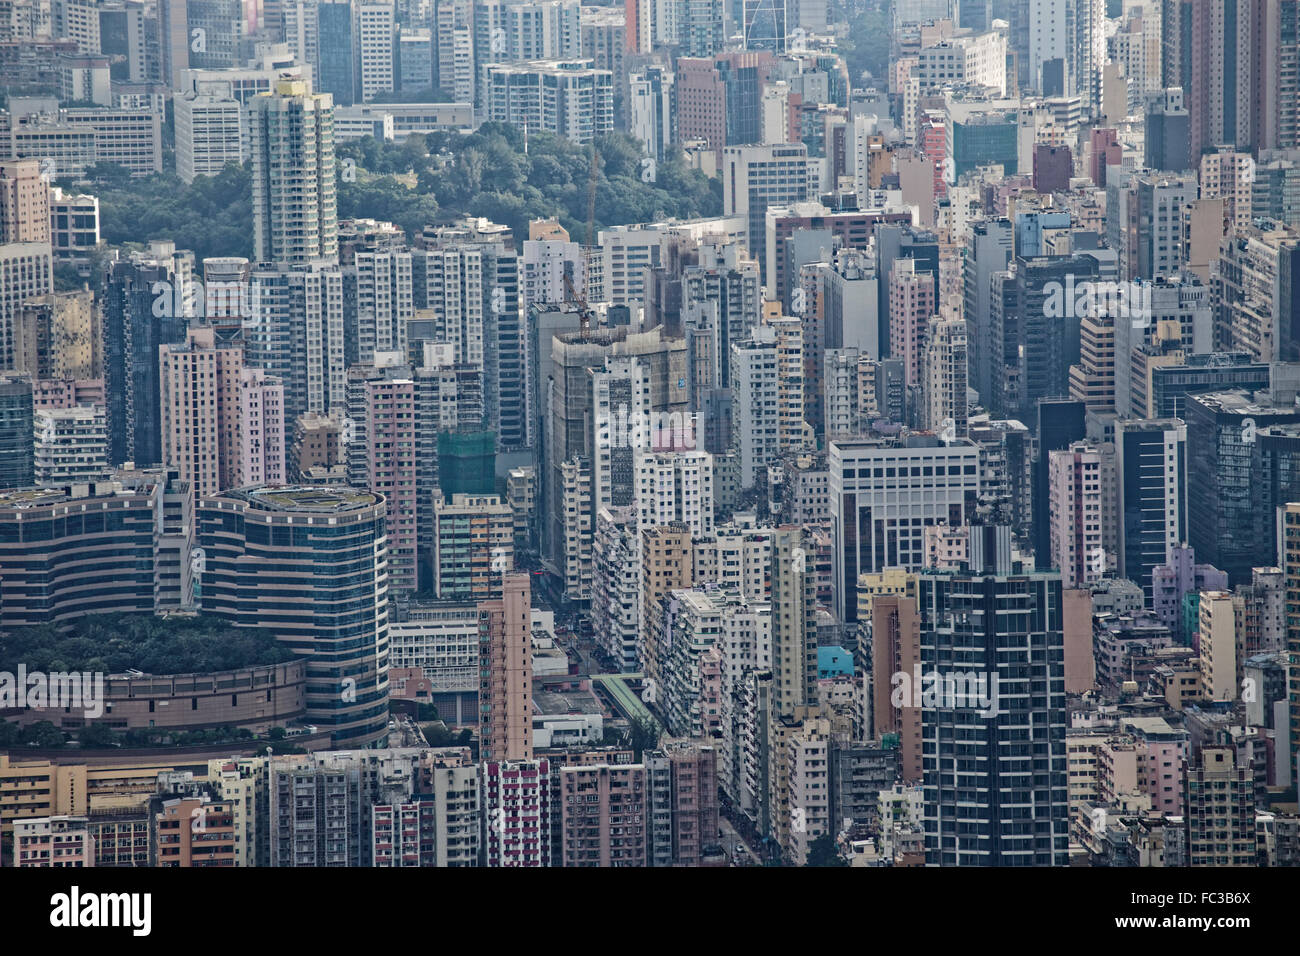 Hong Kong cityscape, crowd buildings in mist - Stock Image